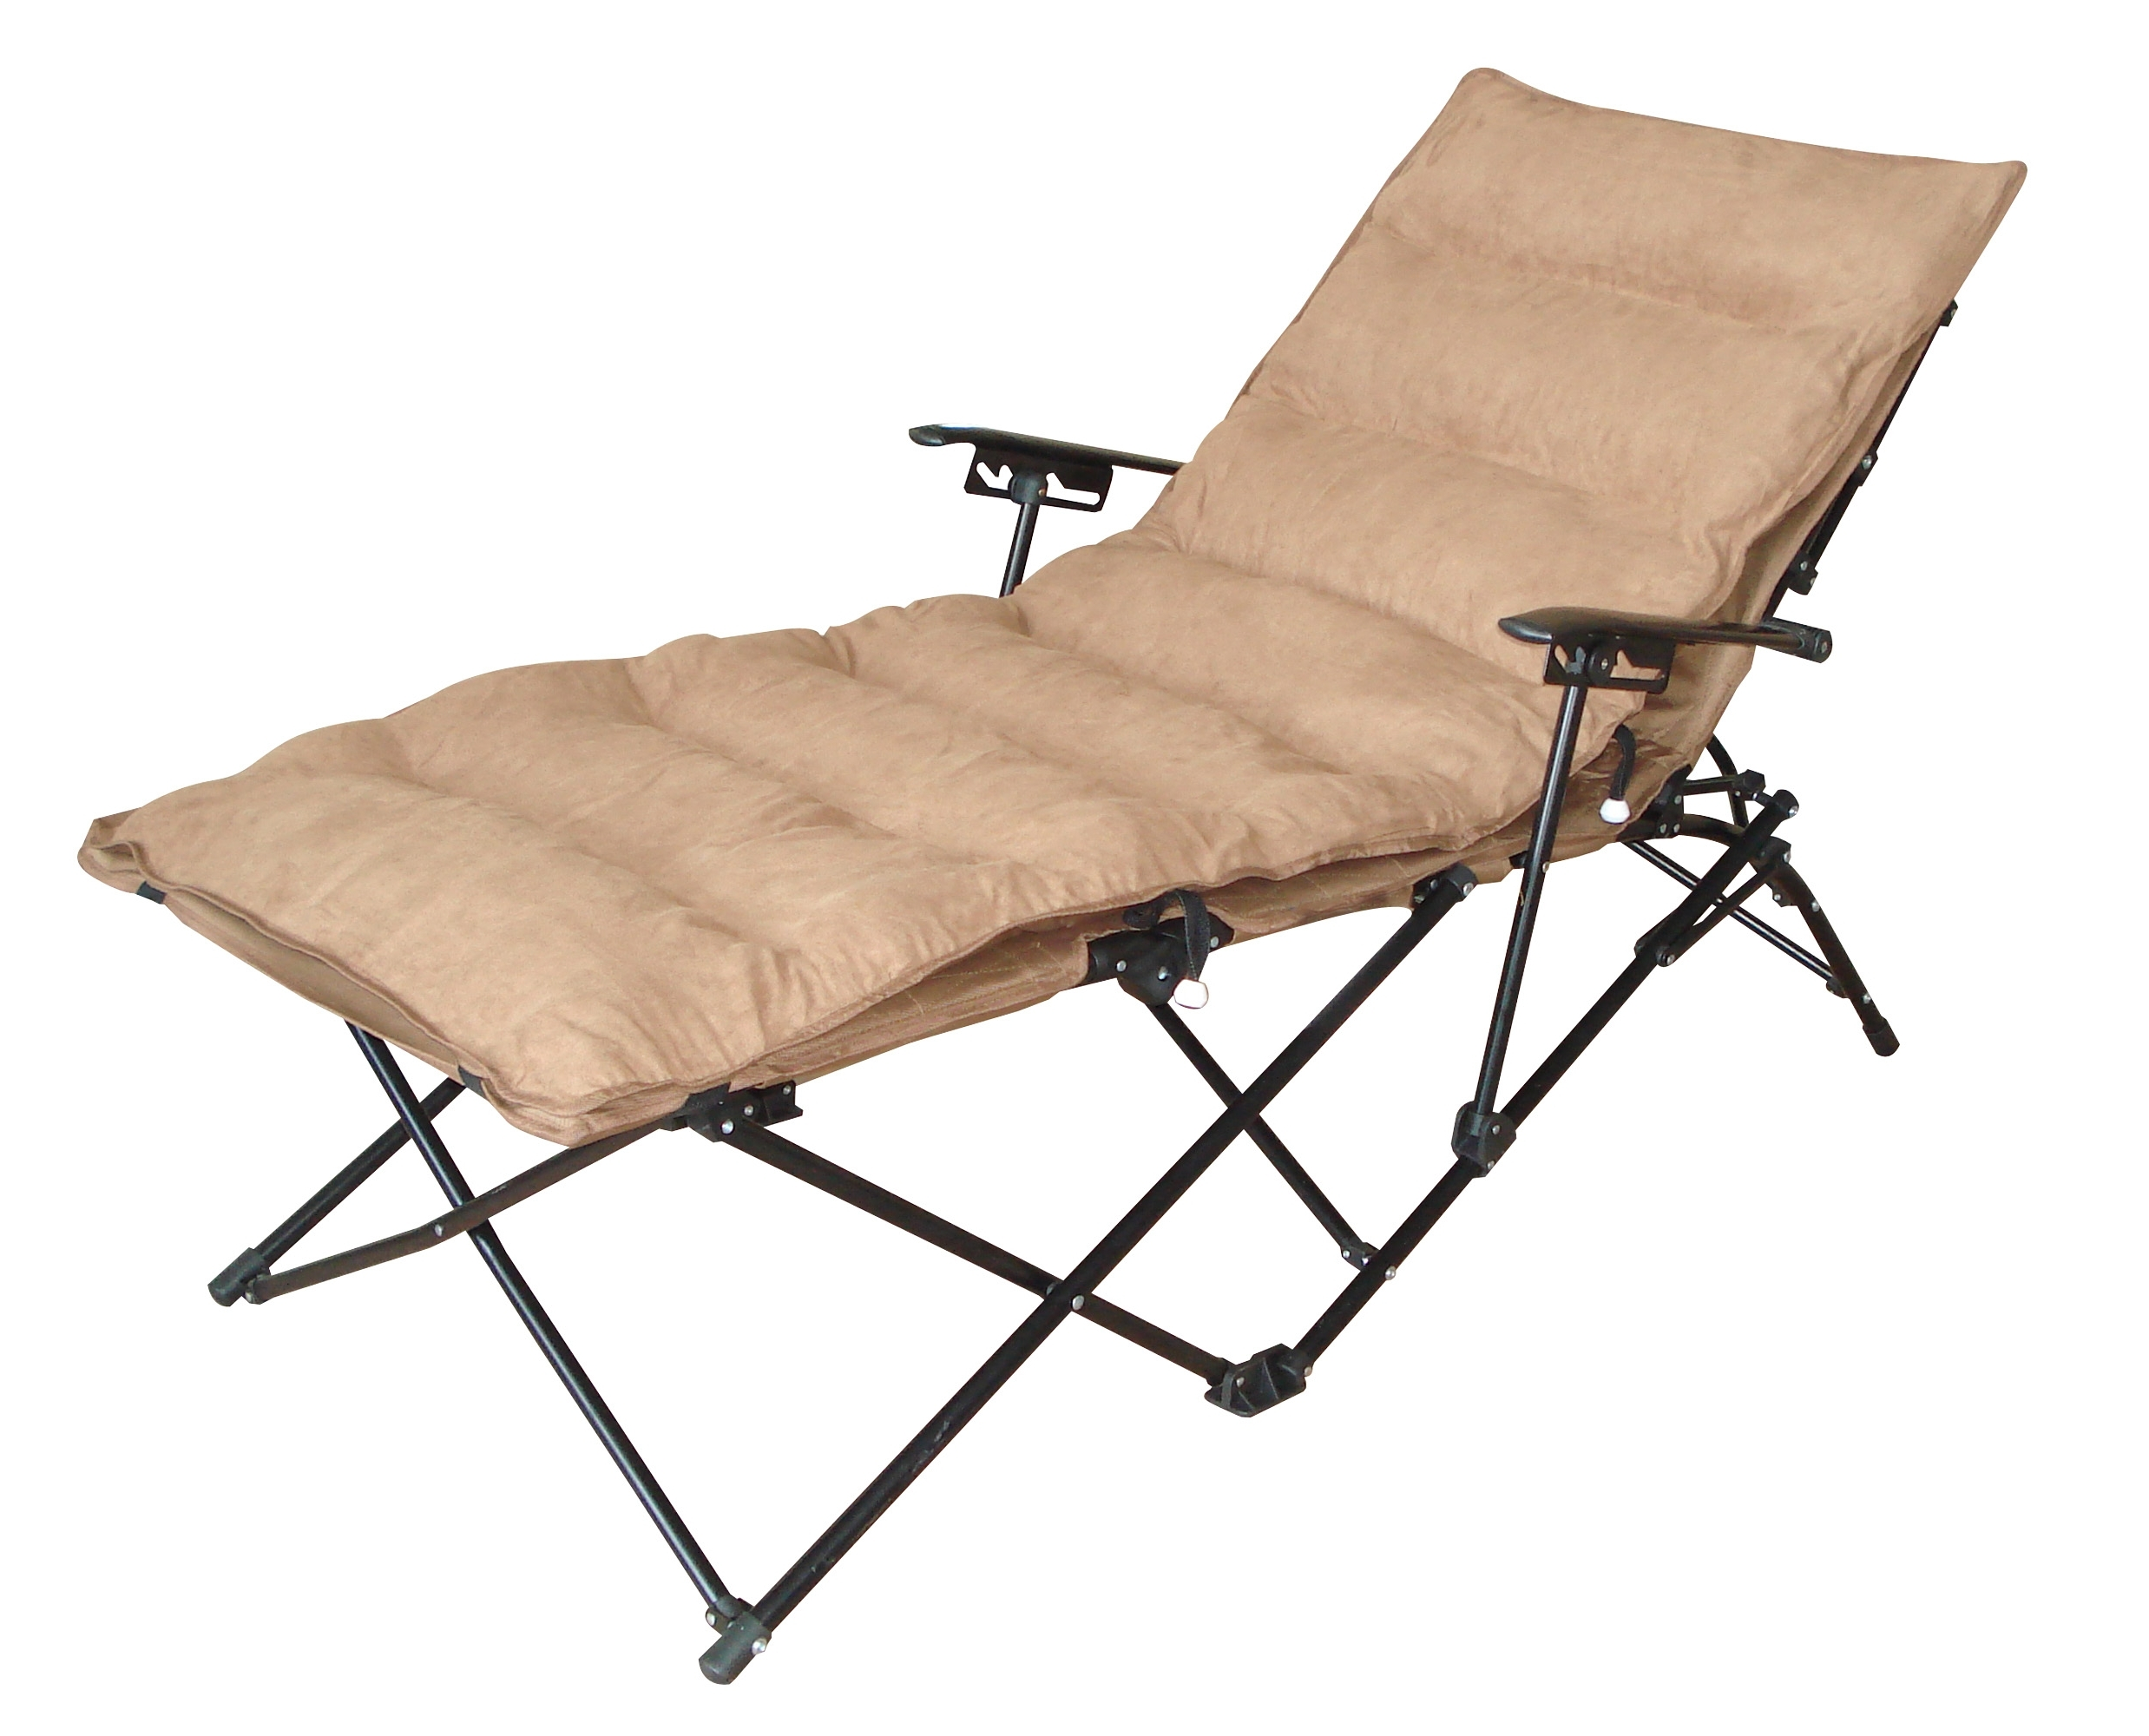 Fashionable Lightweight Chaise Lounge Chairs Pertaining To Outdoor : Folding Chaise Lounge Chair Jelly Lounge Chair Zero (View 4 of 15)